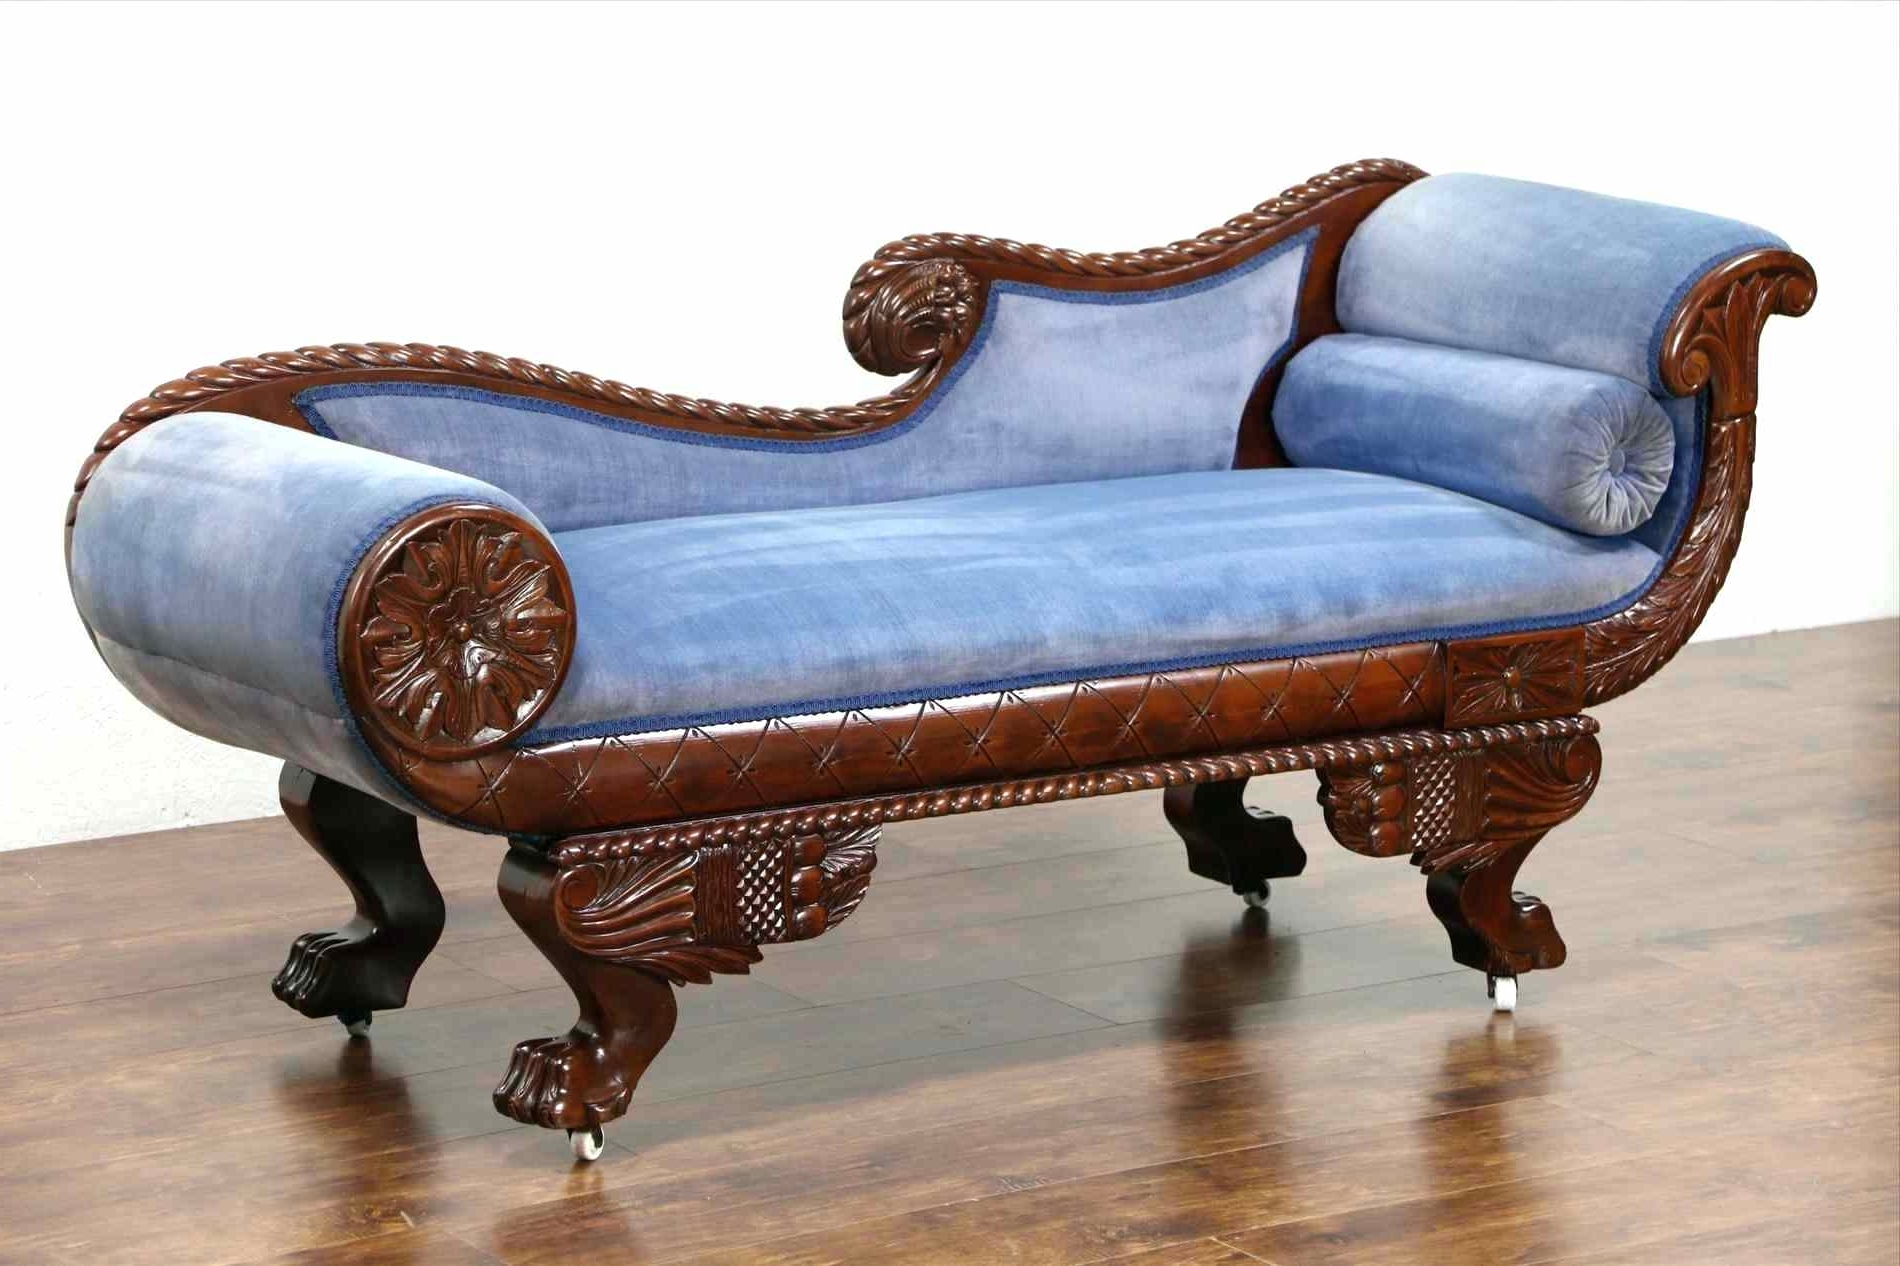 Antique Chaise Lounge Chair • Lounge Chairs Ideas Pertaining To 2017 Vintage Indoor Chaise Lounge Chairs (View 2 of 15)